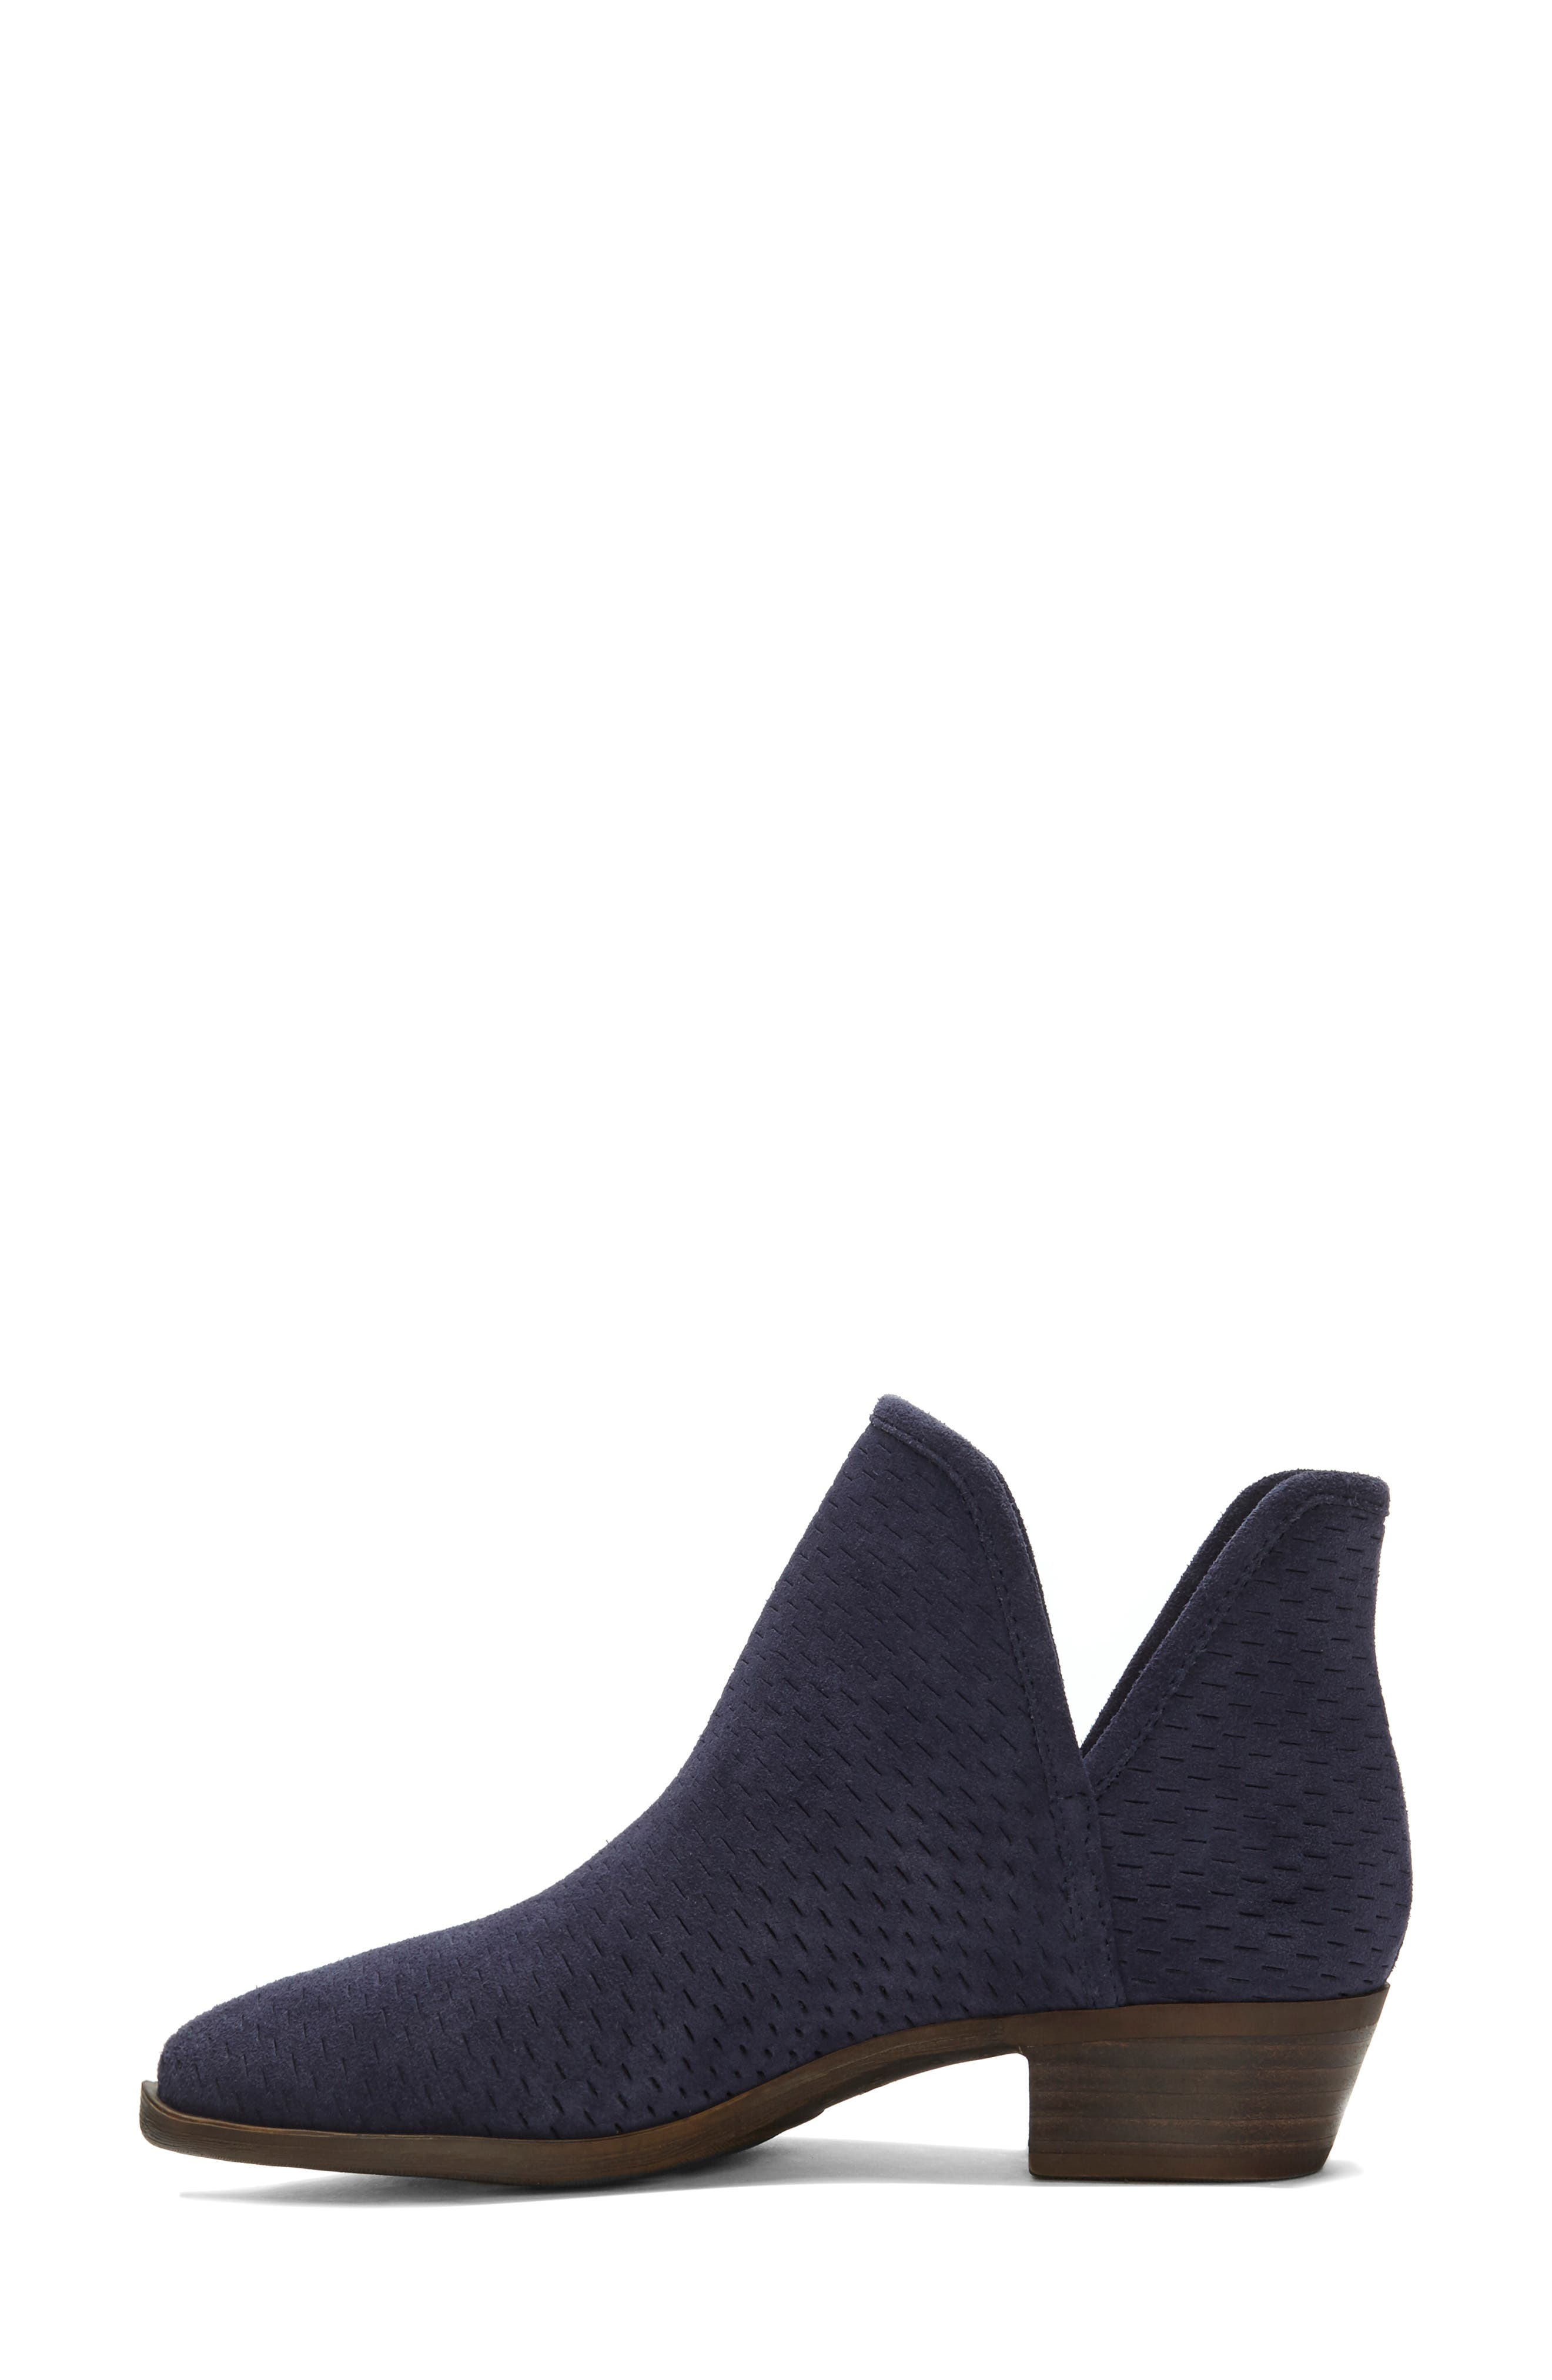 Baley Bootie,                             Alternate thumbnail 6, color,                             MOROCCAN BLUE SUEDE